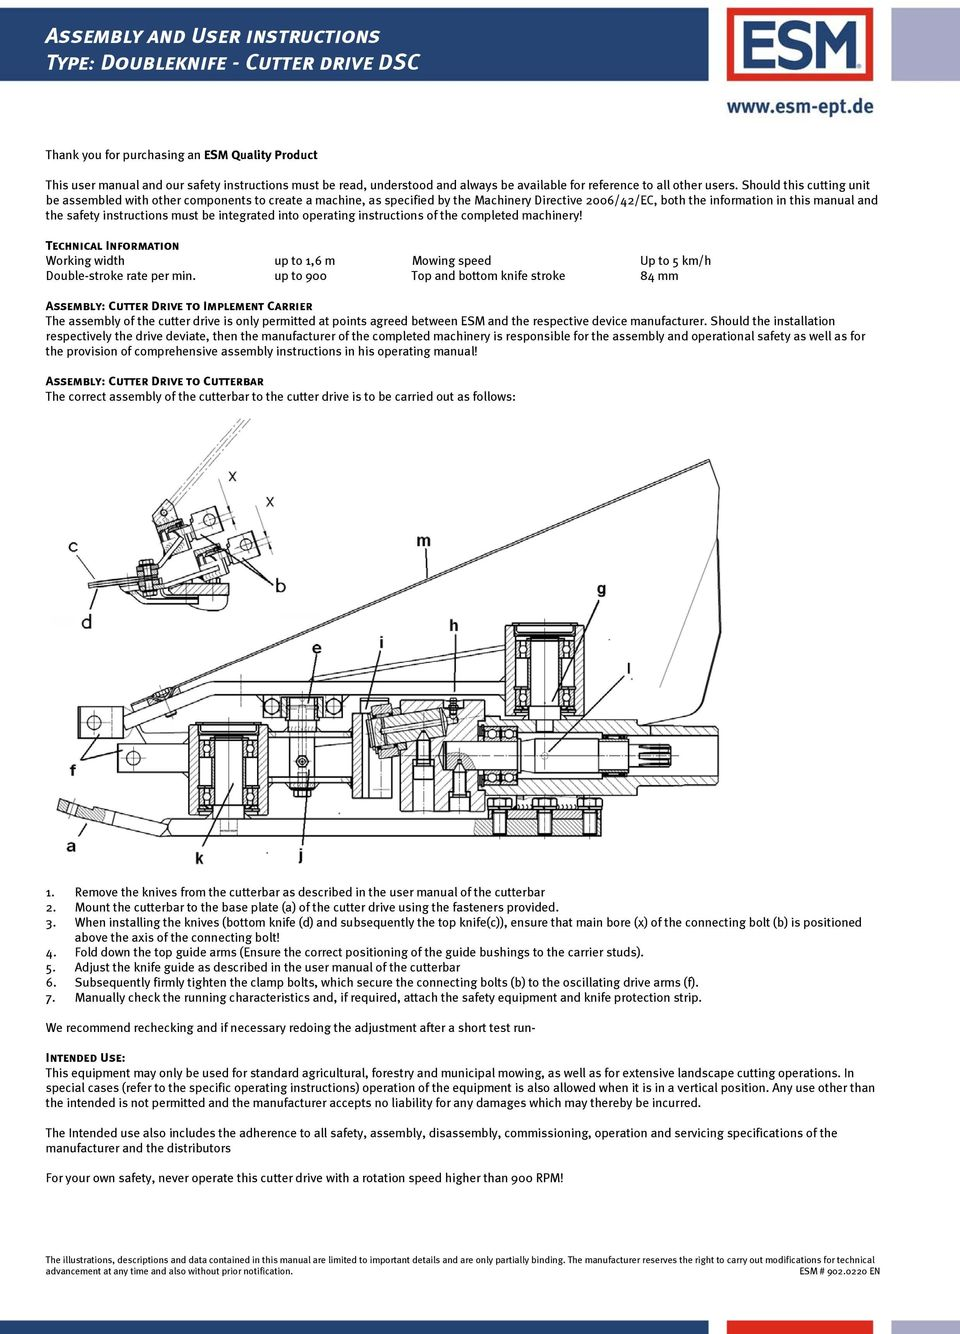 Should this cutting unit be assembled with other components to create a machine, as specified by the Machinery Directive 2006/42/EC, both the information in this manual and the safety instructions